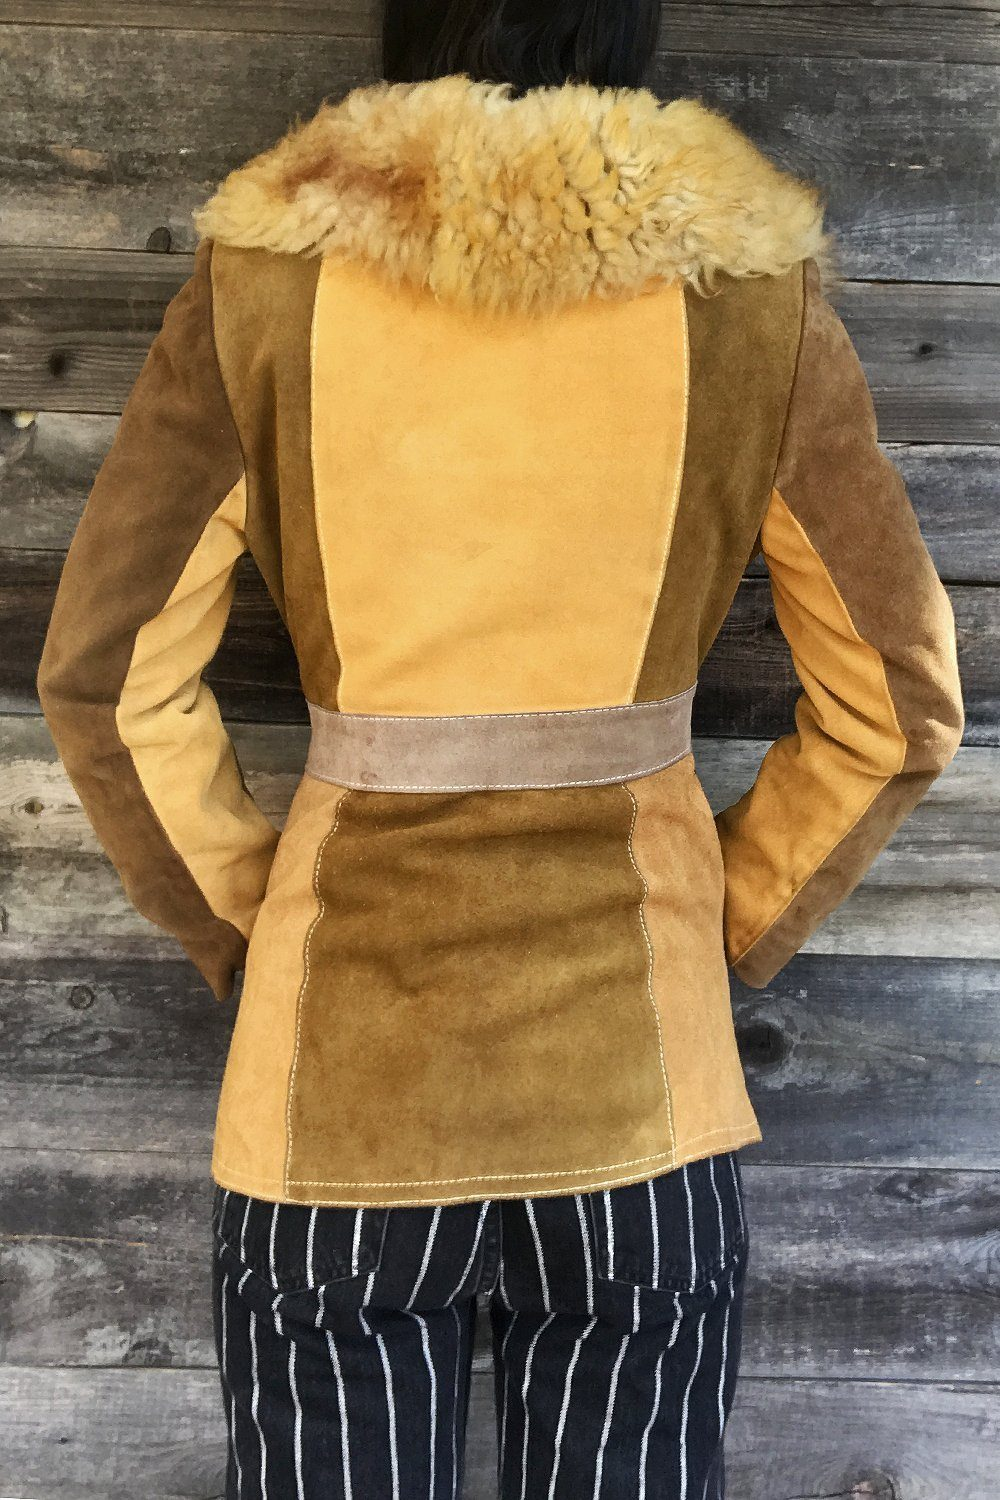 1970s Norwegian Wood Shearling Patchwork Suede Penny Lane Coat